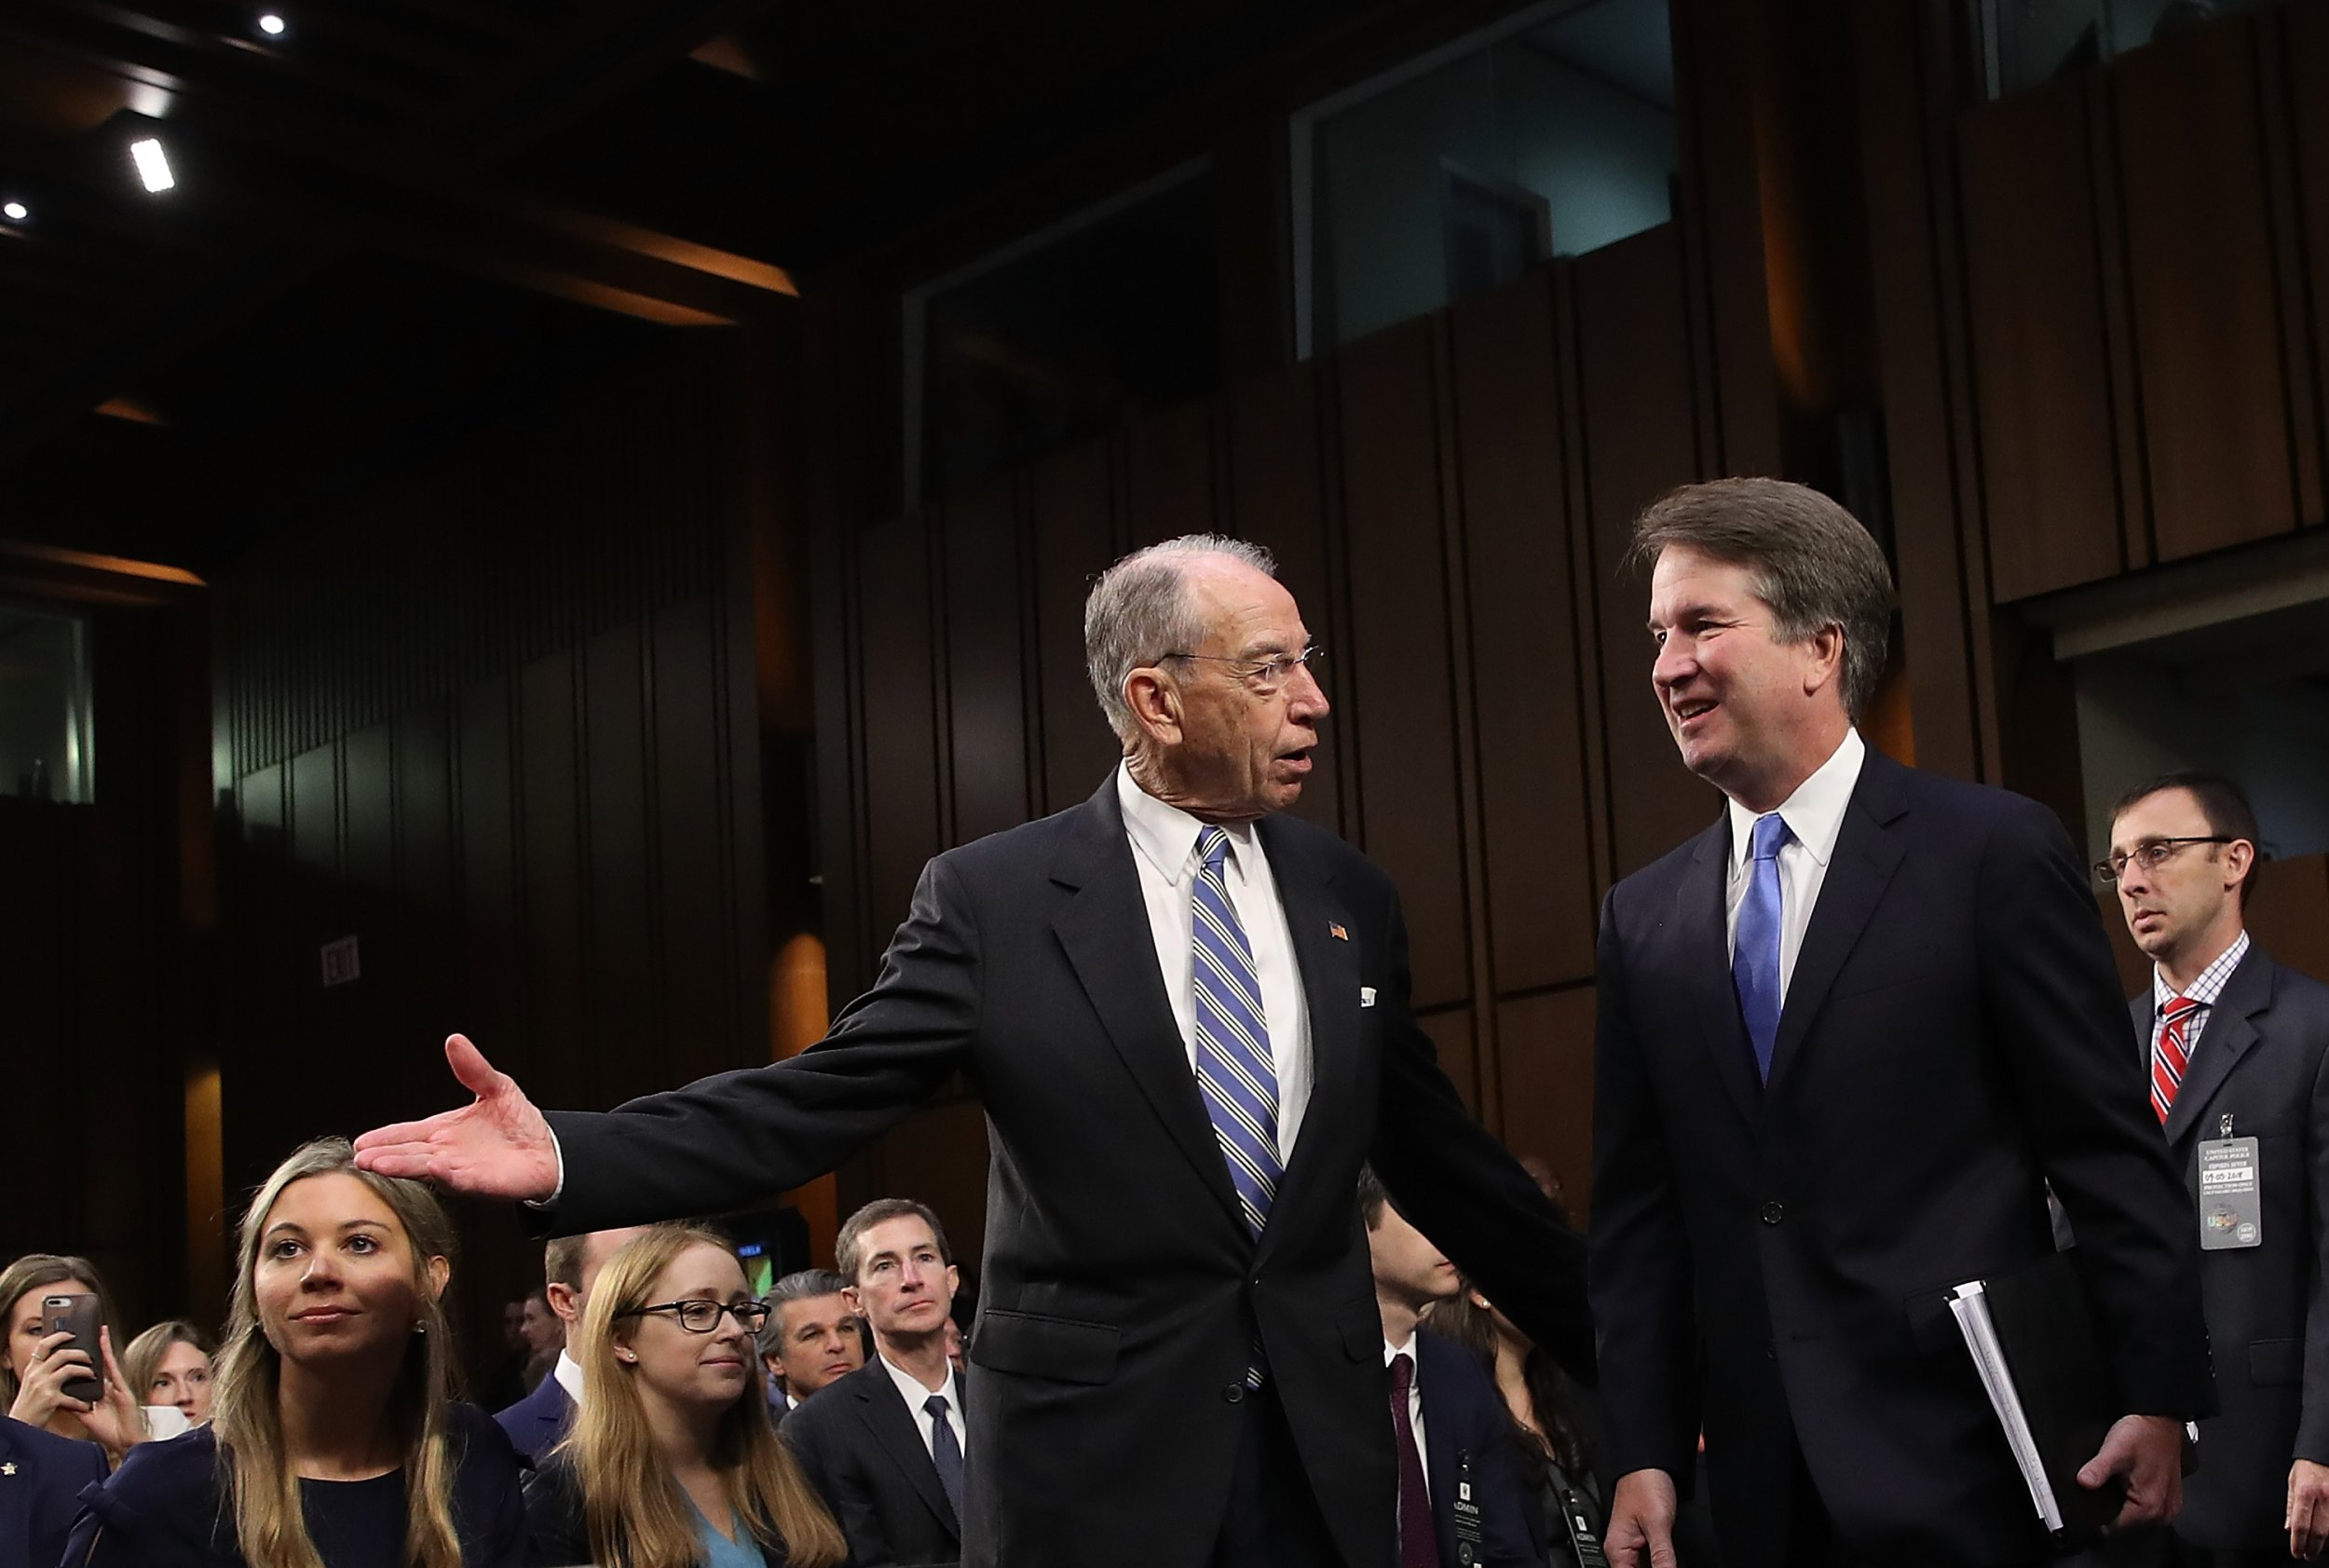 Senate Judiciary Chairman Kavanaugh Accuser Julie Swetnick, Michael Avenatti, Investigation